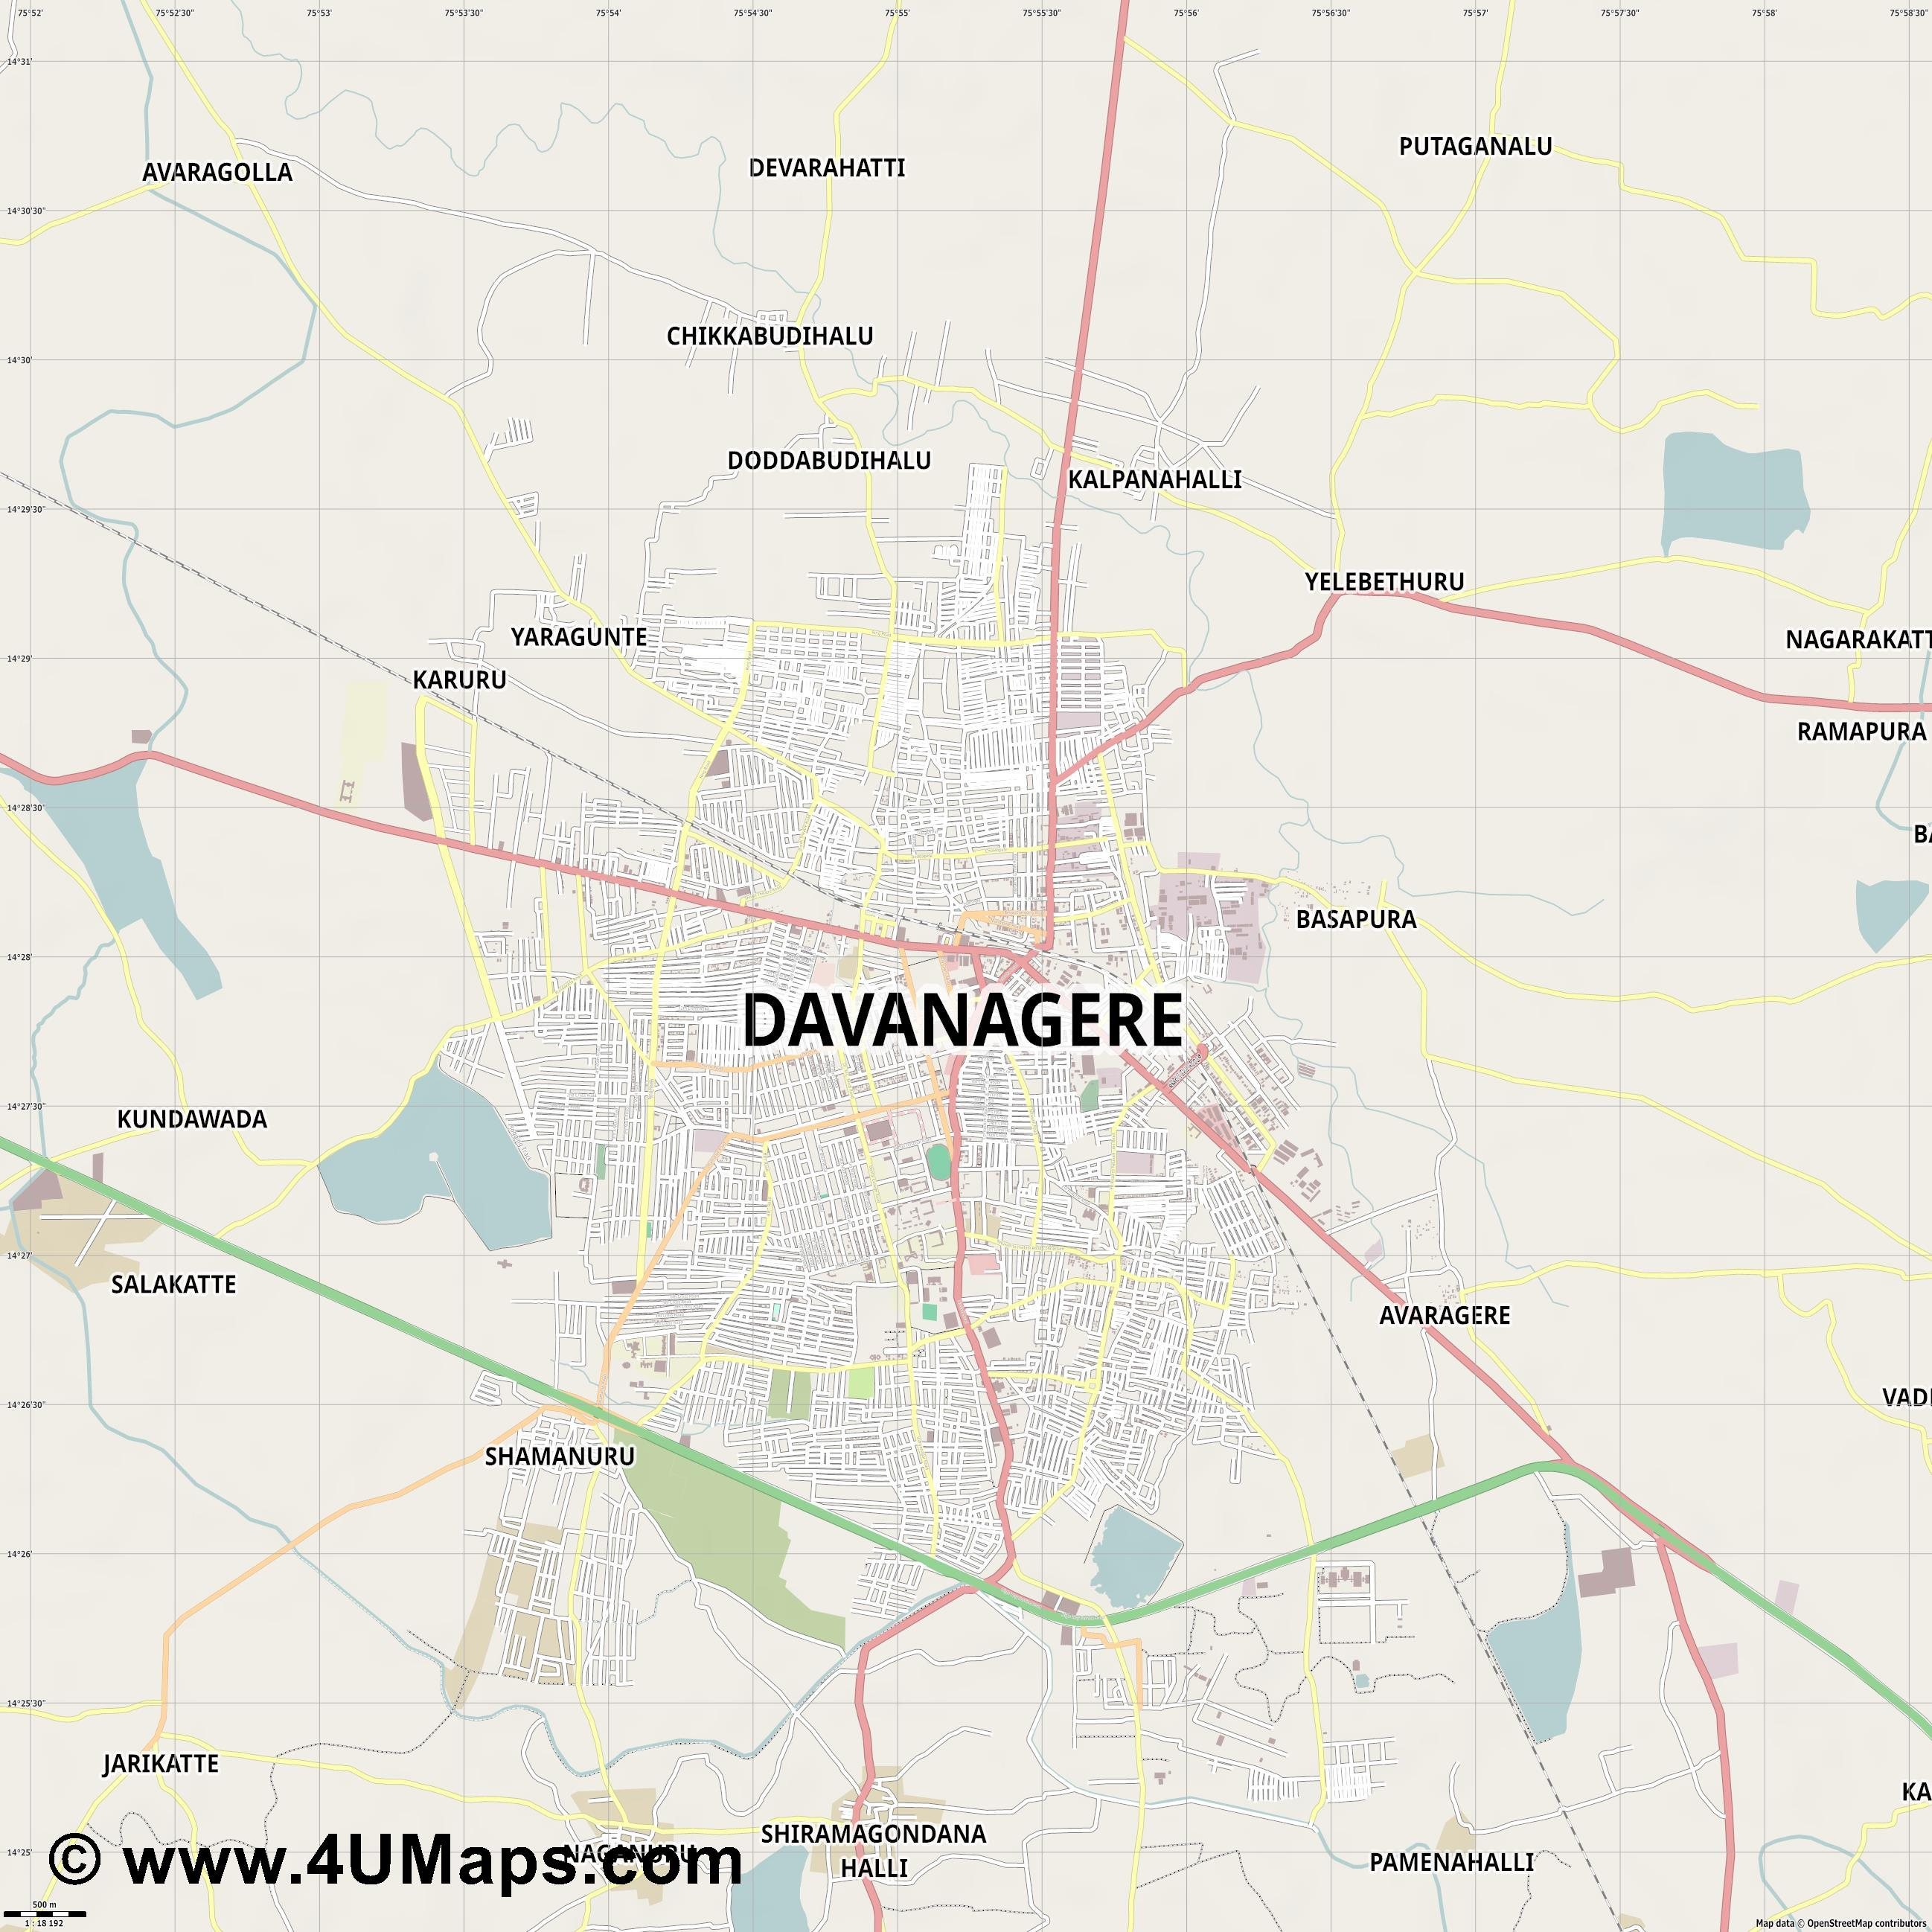 Davanagere  jpg ultra high detail preview vector city map